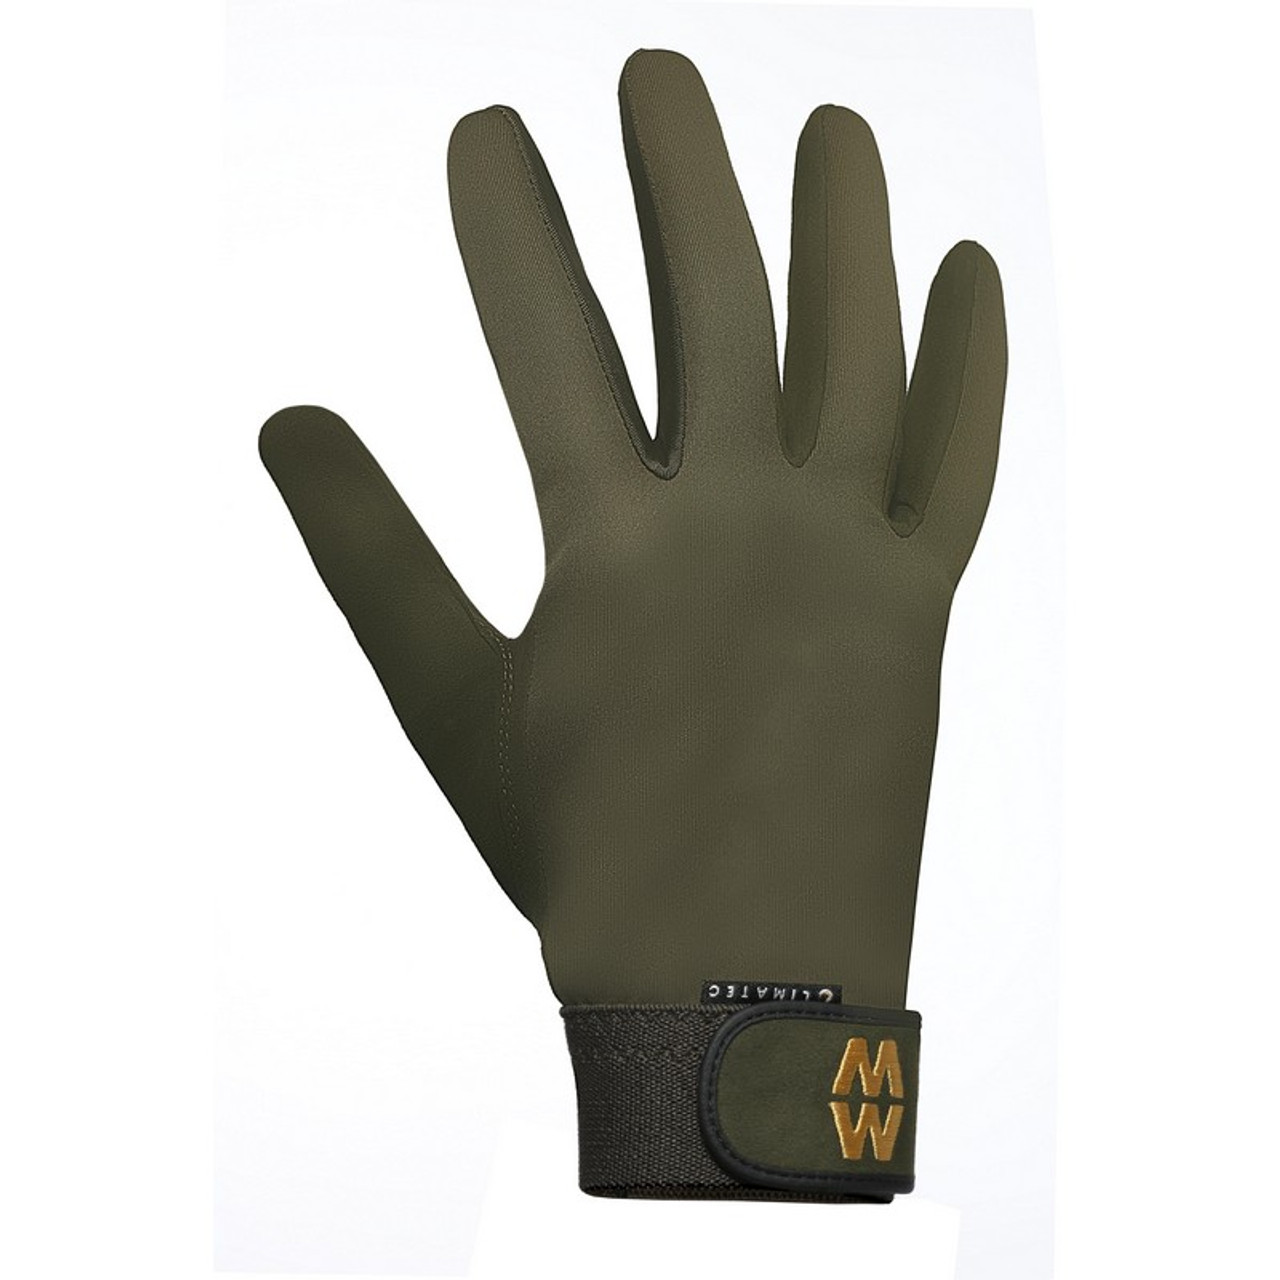 Best price for MacWet Gloves, on sale from Bradford Stalker.